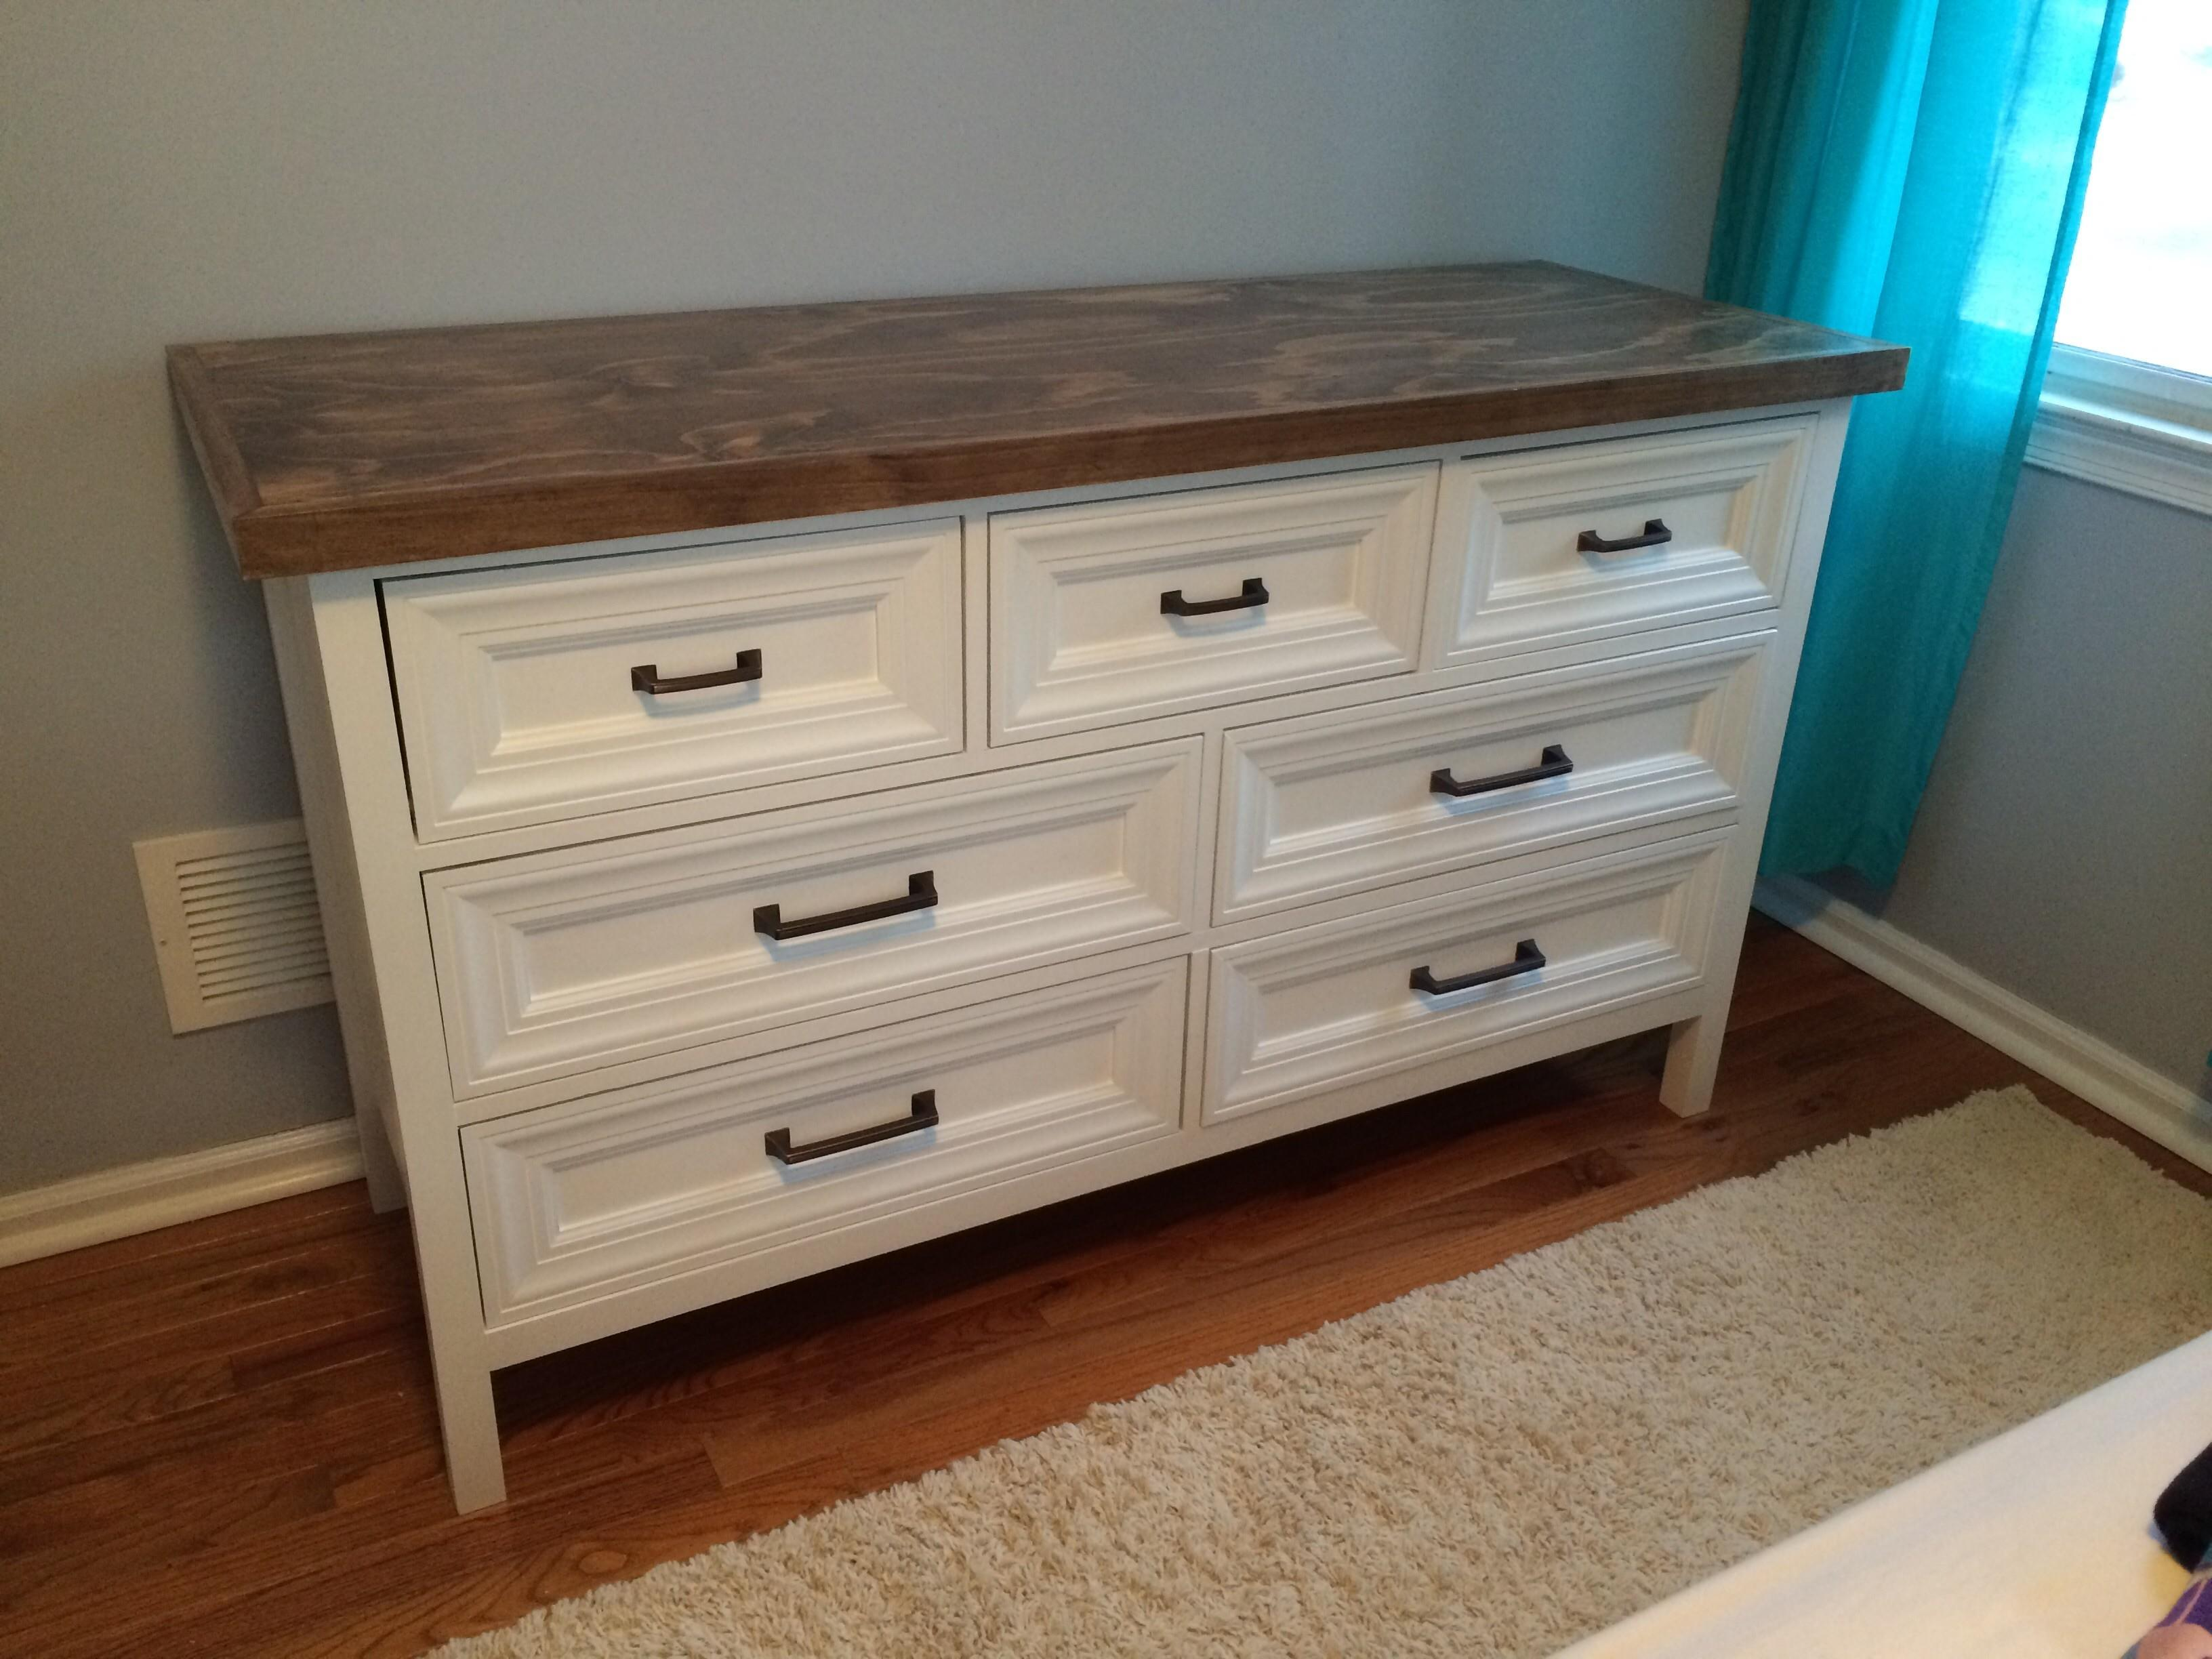 Ana White Kendal Dresser Upgraded Diy Projects